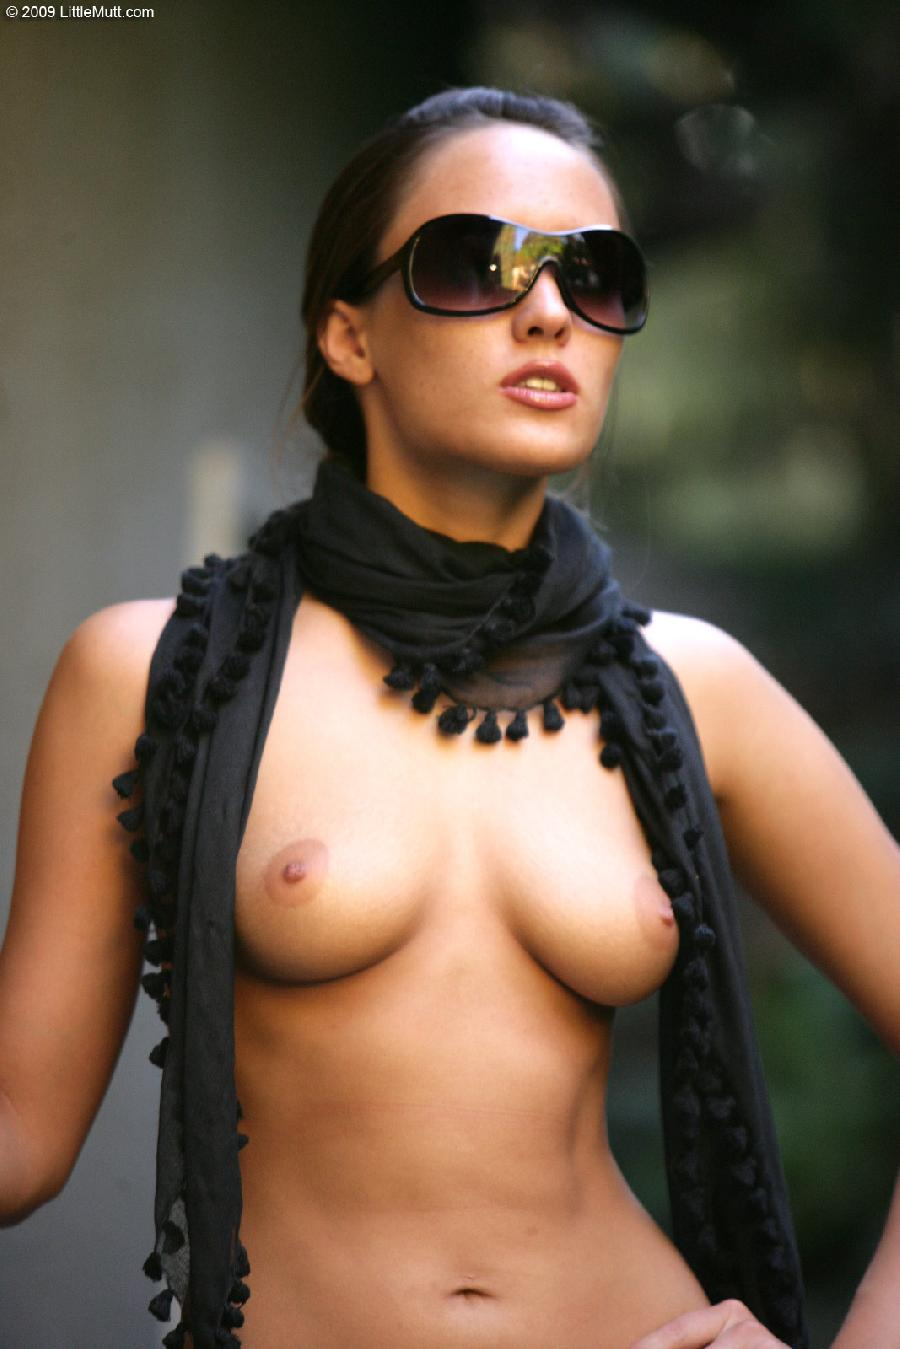 Sexy Nadia Aria in a scarf - 5